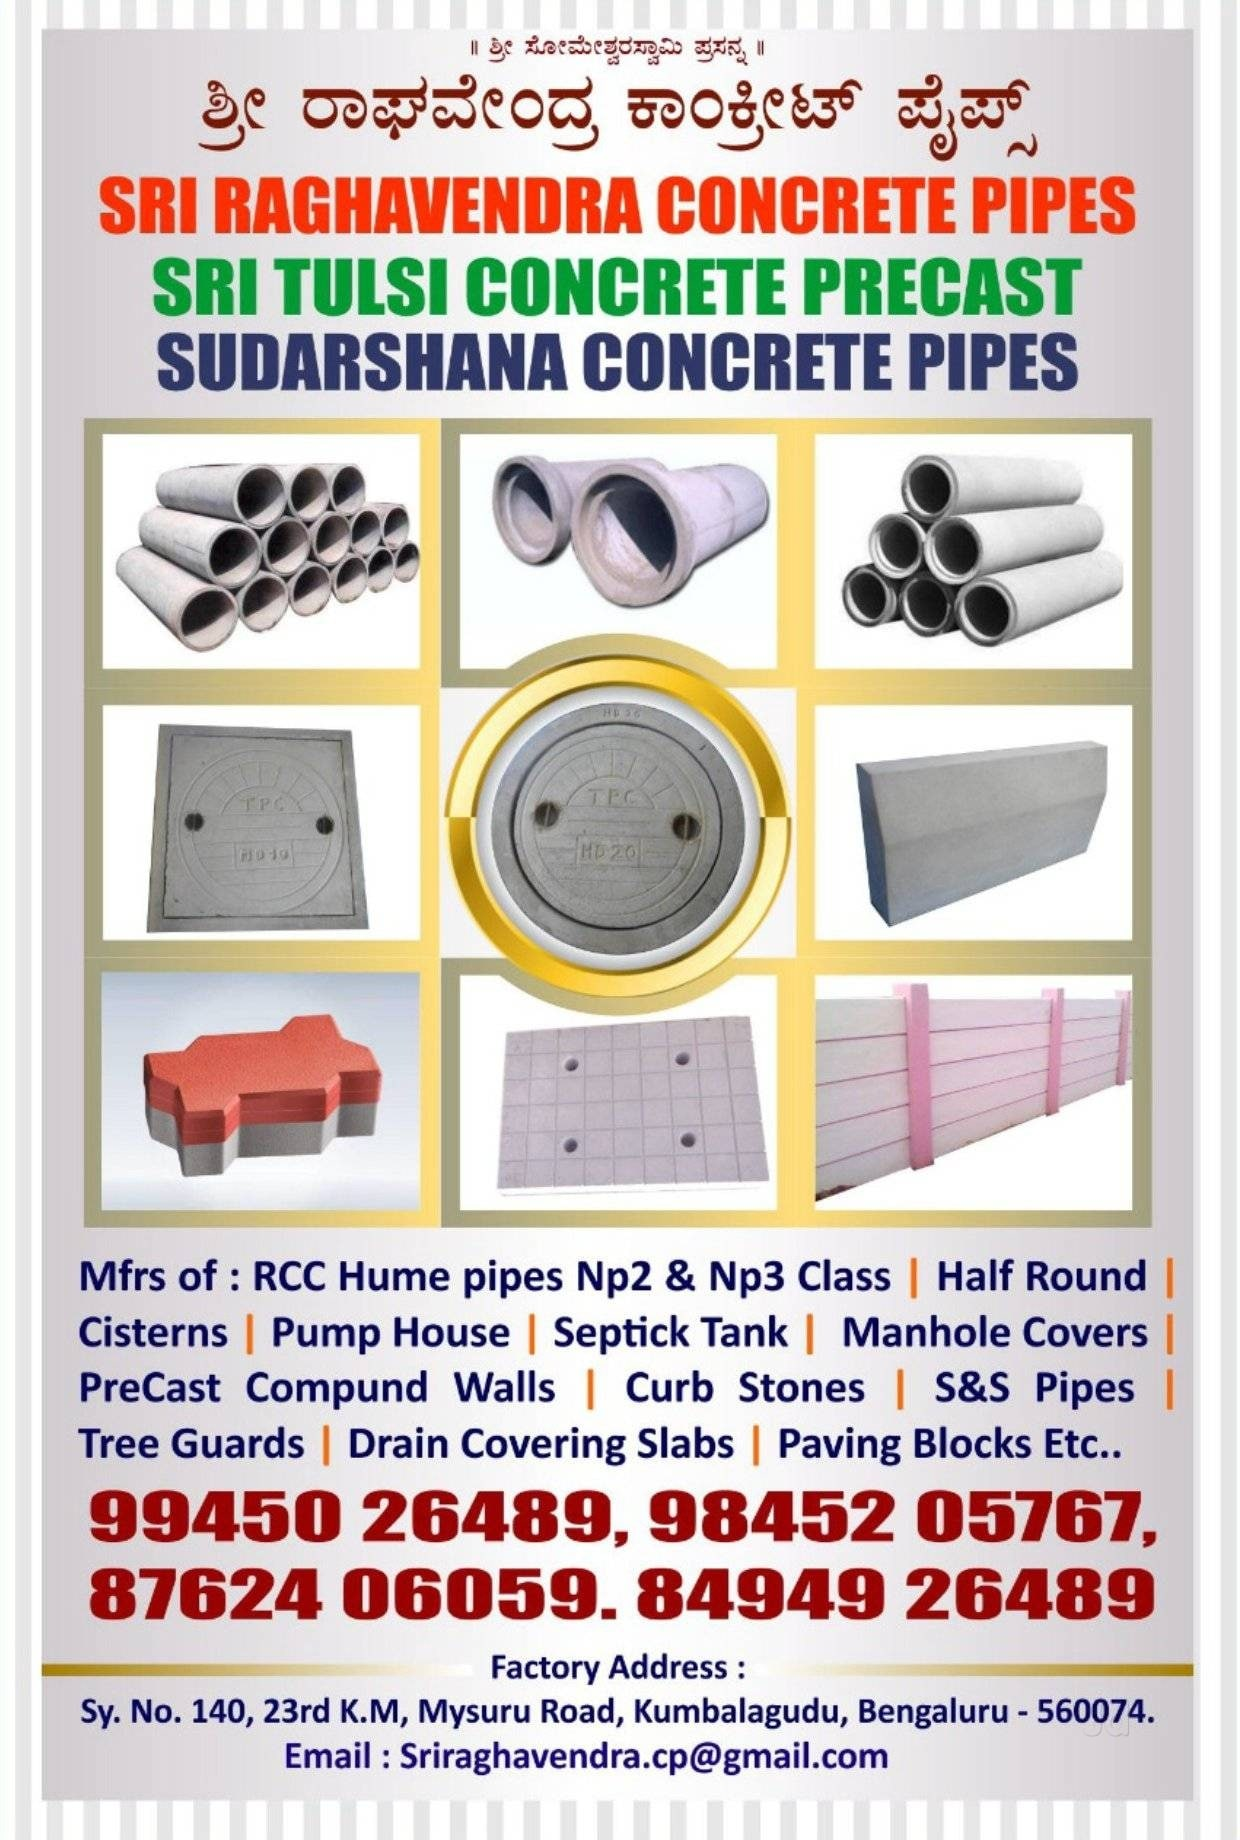 Top 20 Precast Boundary Wall Manufacturers in Jayanagar 8th